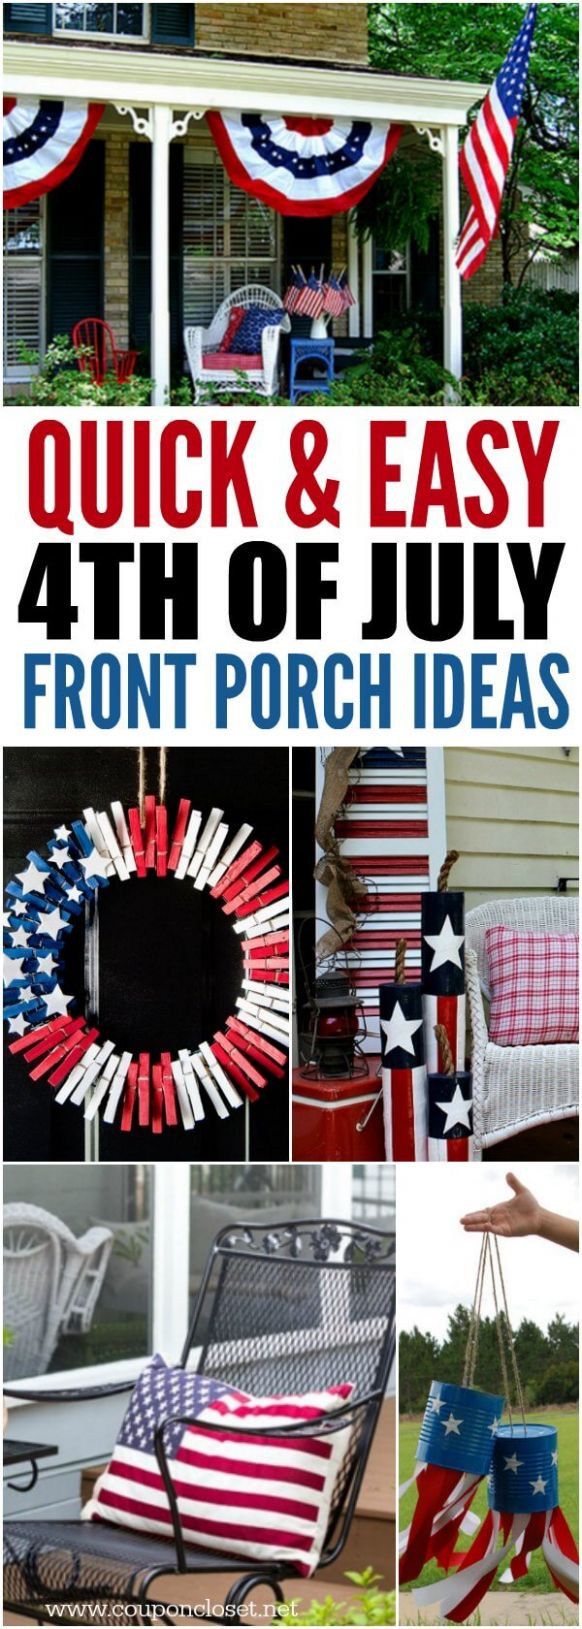 11th of July Front Porch Ideas- Patriotic front porch ideas for the 11th - front porch fourth of july decor